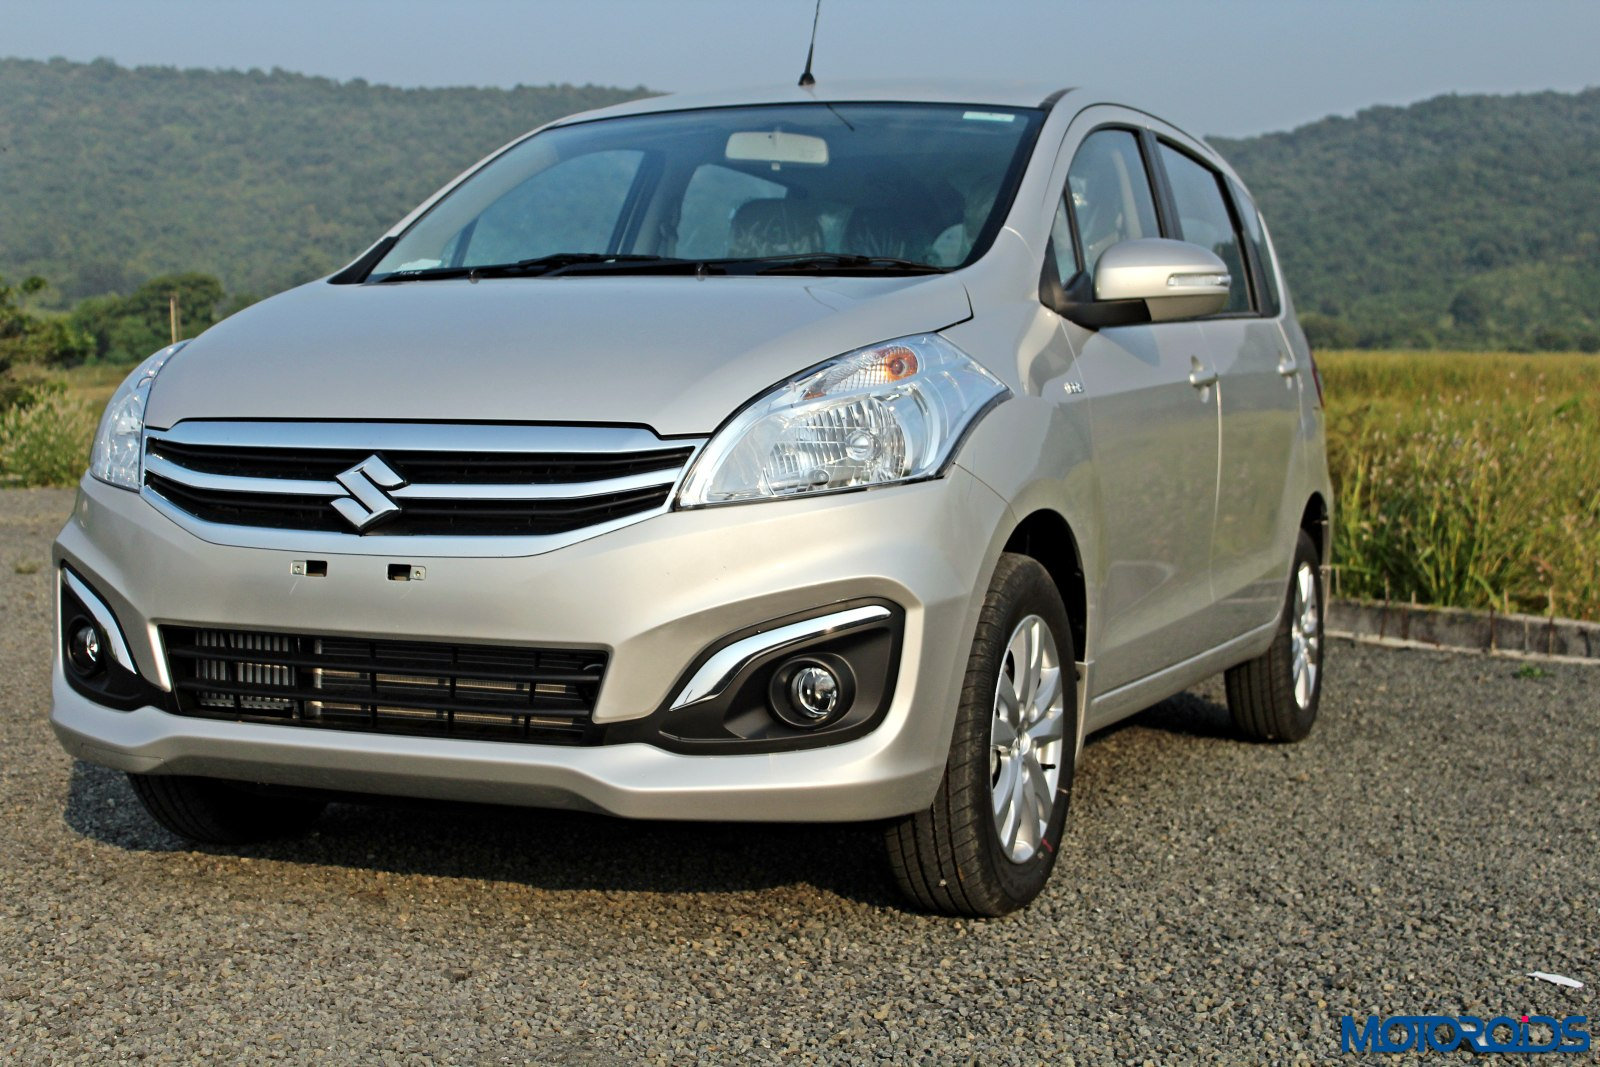 New 2015 Maruti Suzuki Ertiga Facelift ZDi+ Review: In the ...